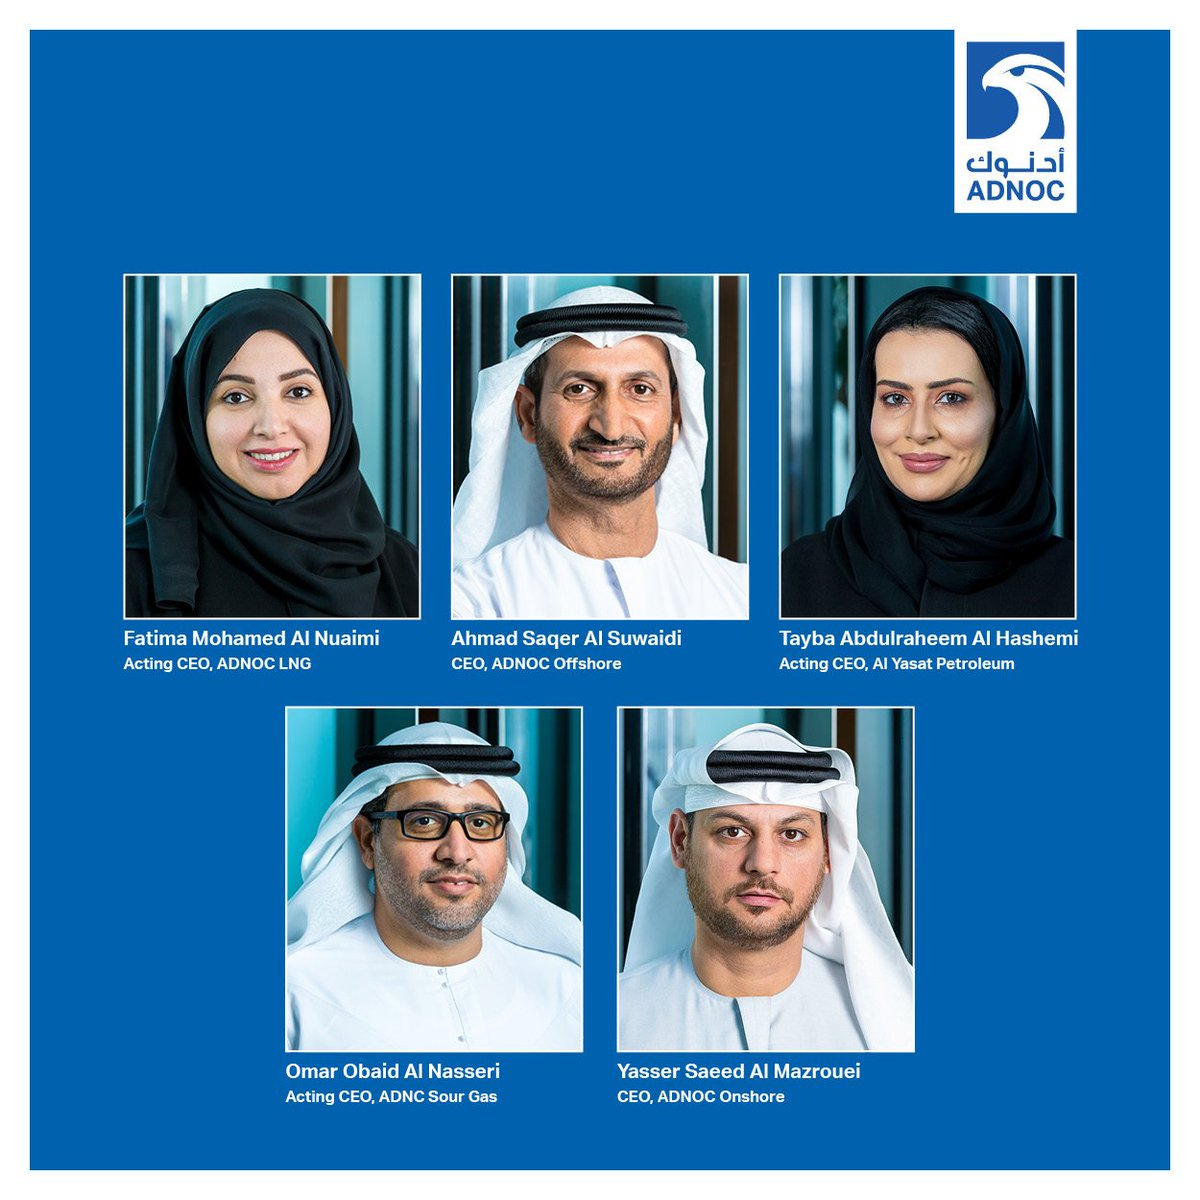 ADNOC Group on Twitter: